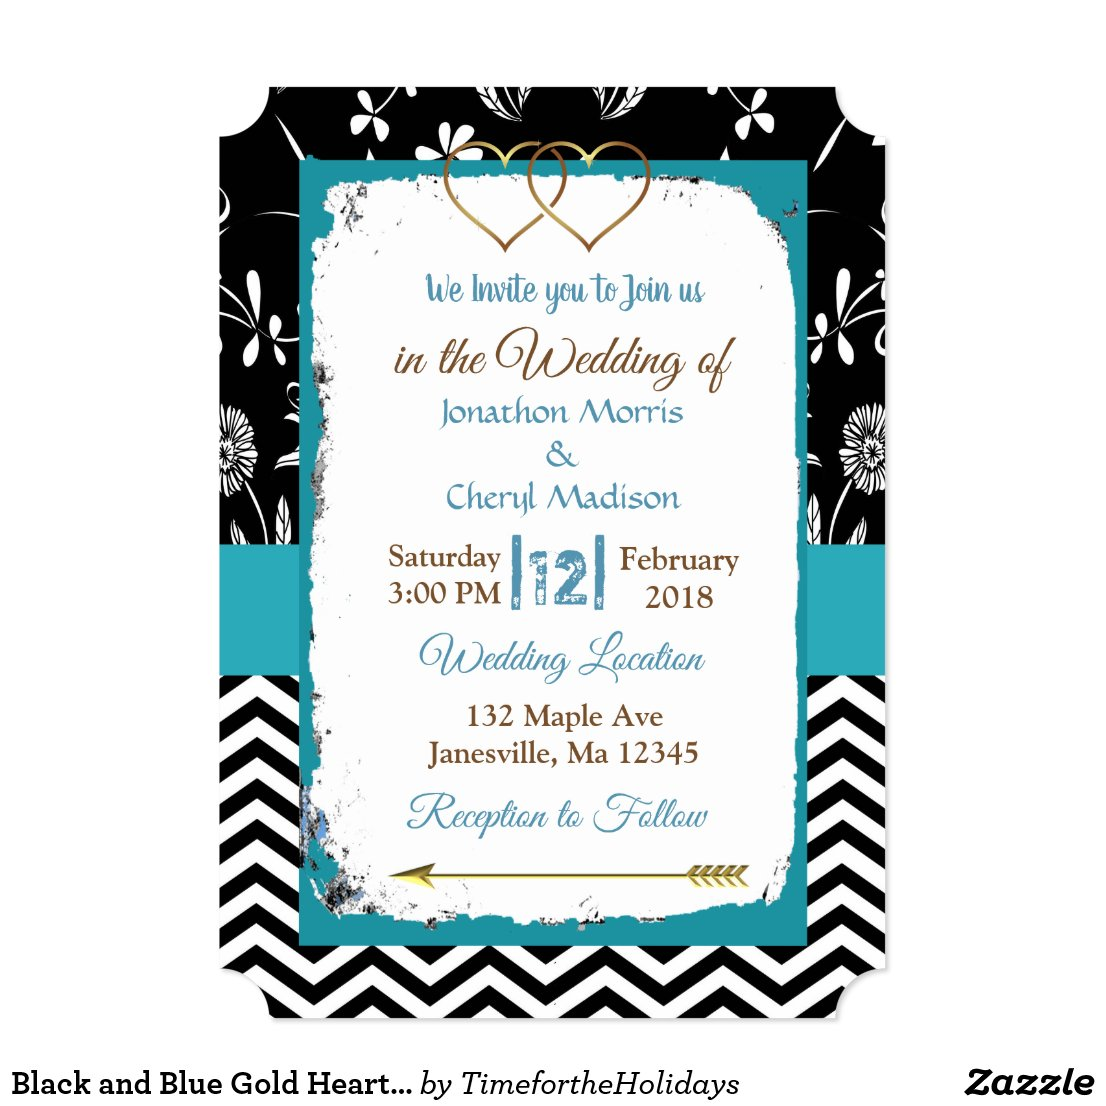 Black and Blue Gold Hearts Wedding Invitation